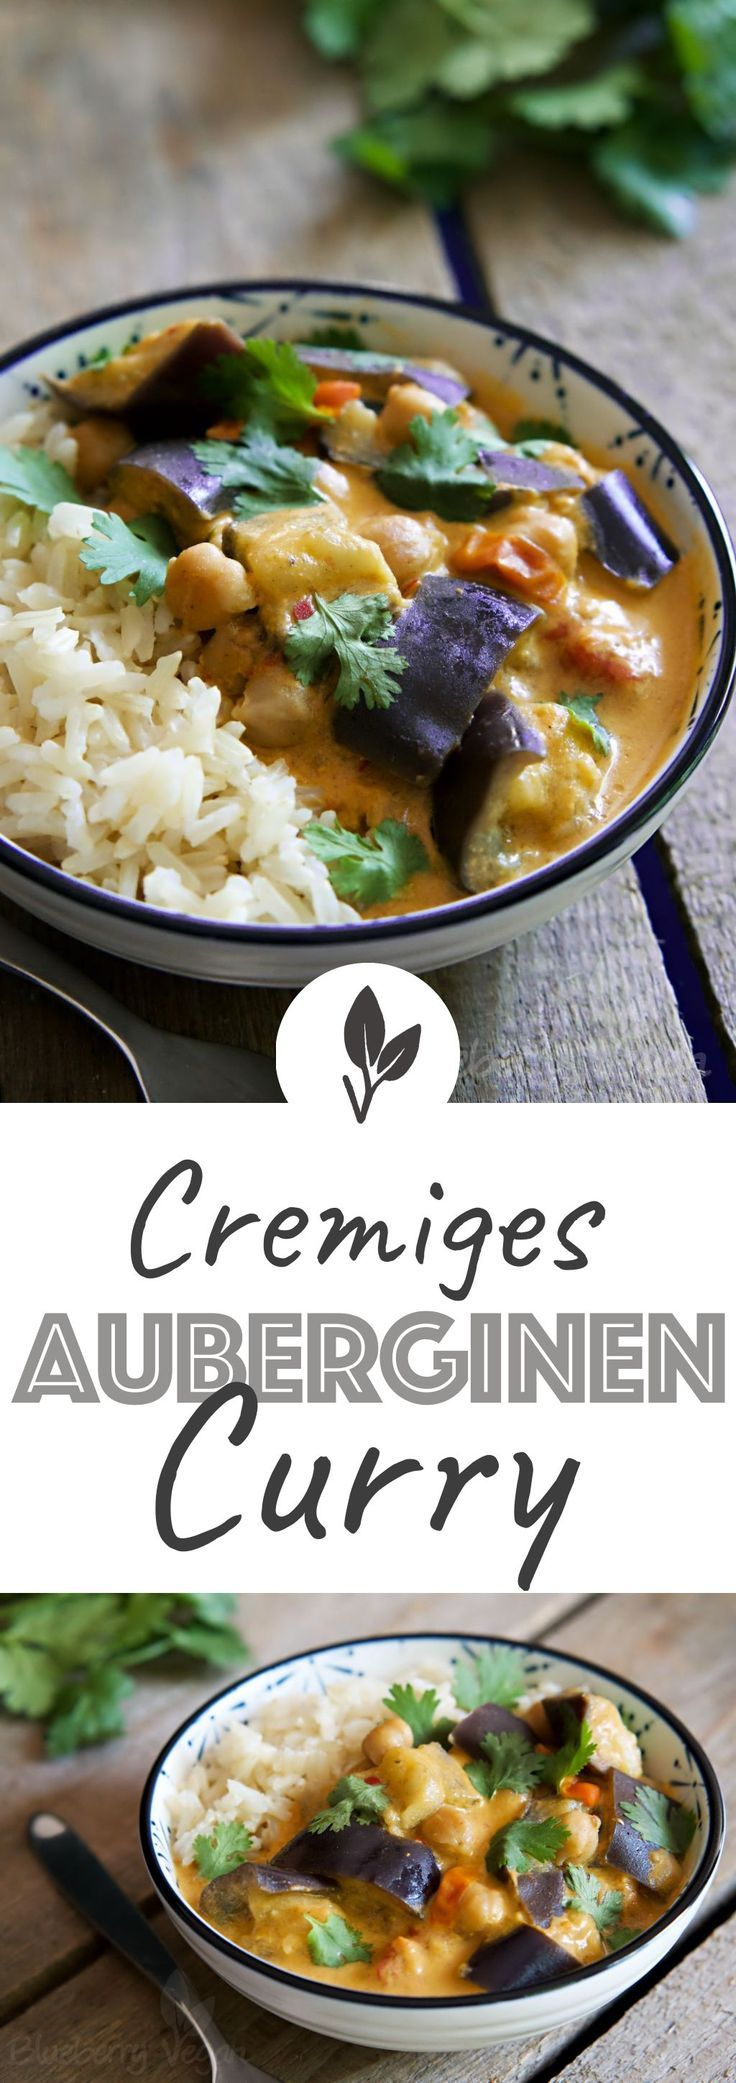 Auberginen-Curry mit Kichererbsen